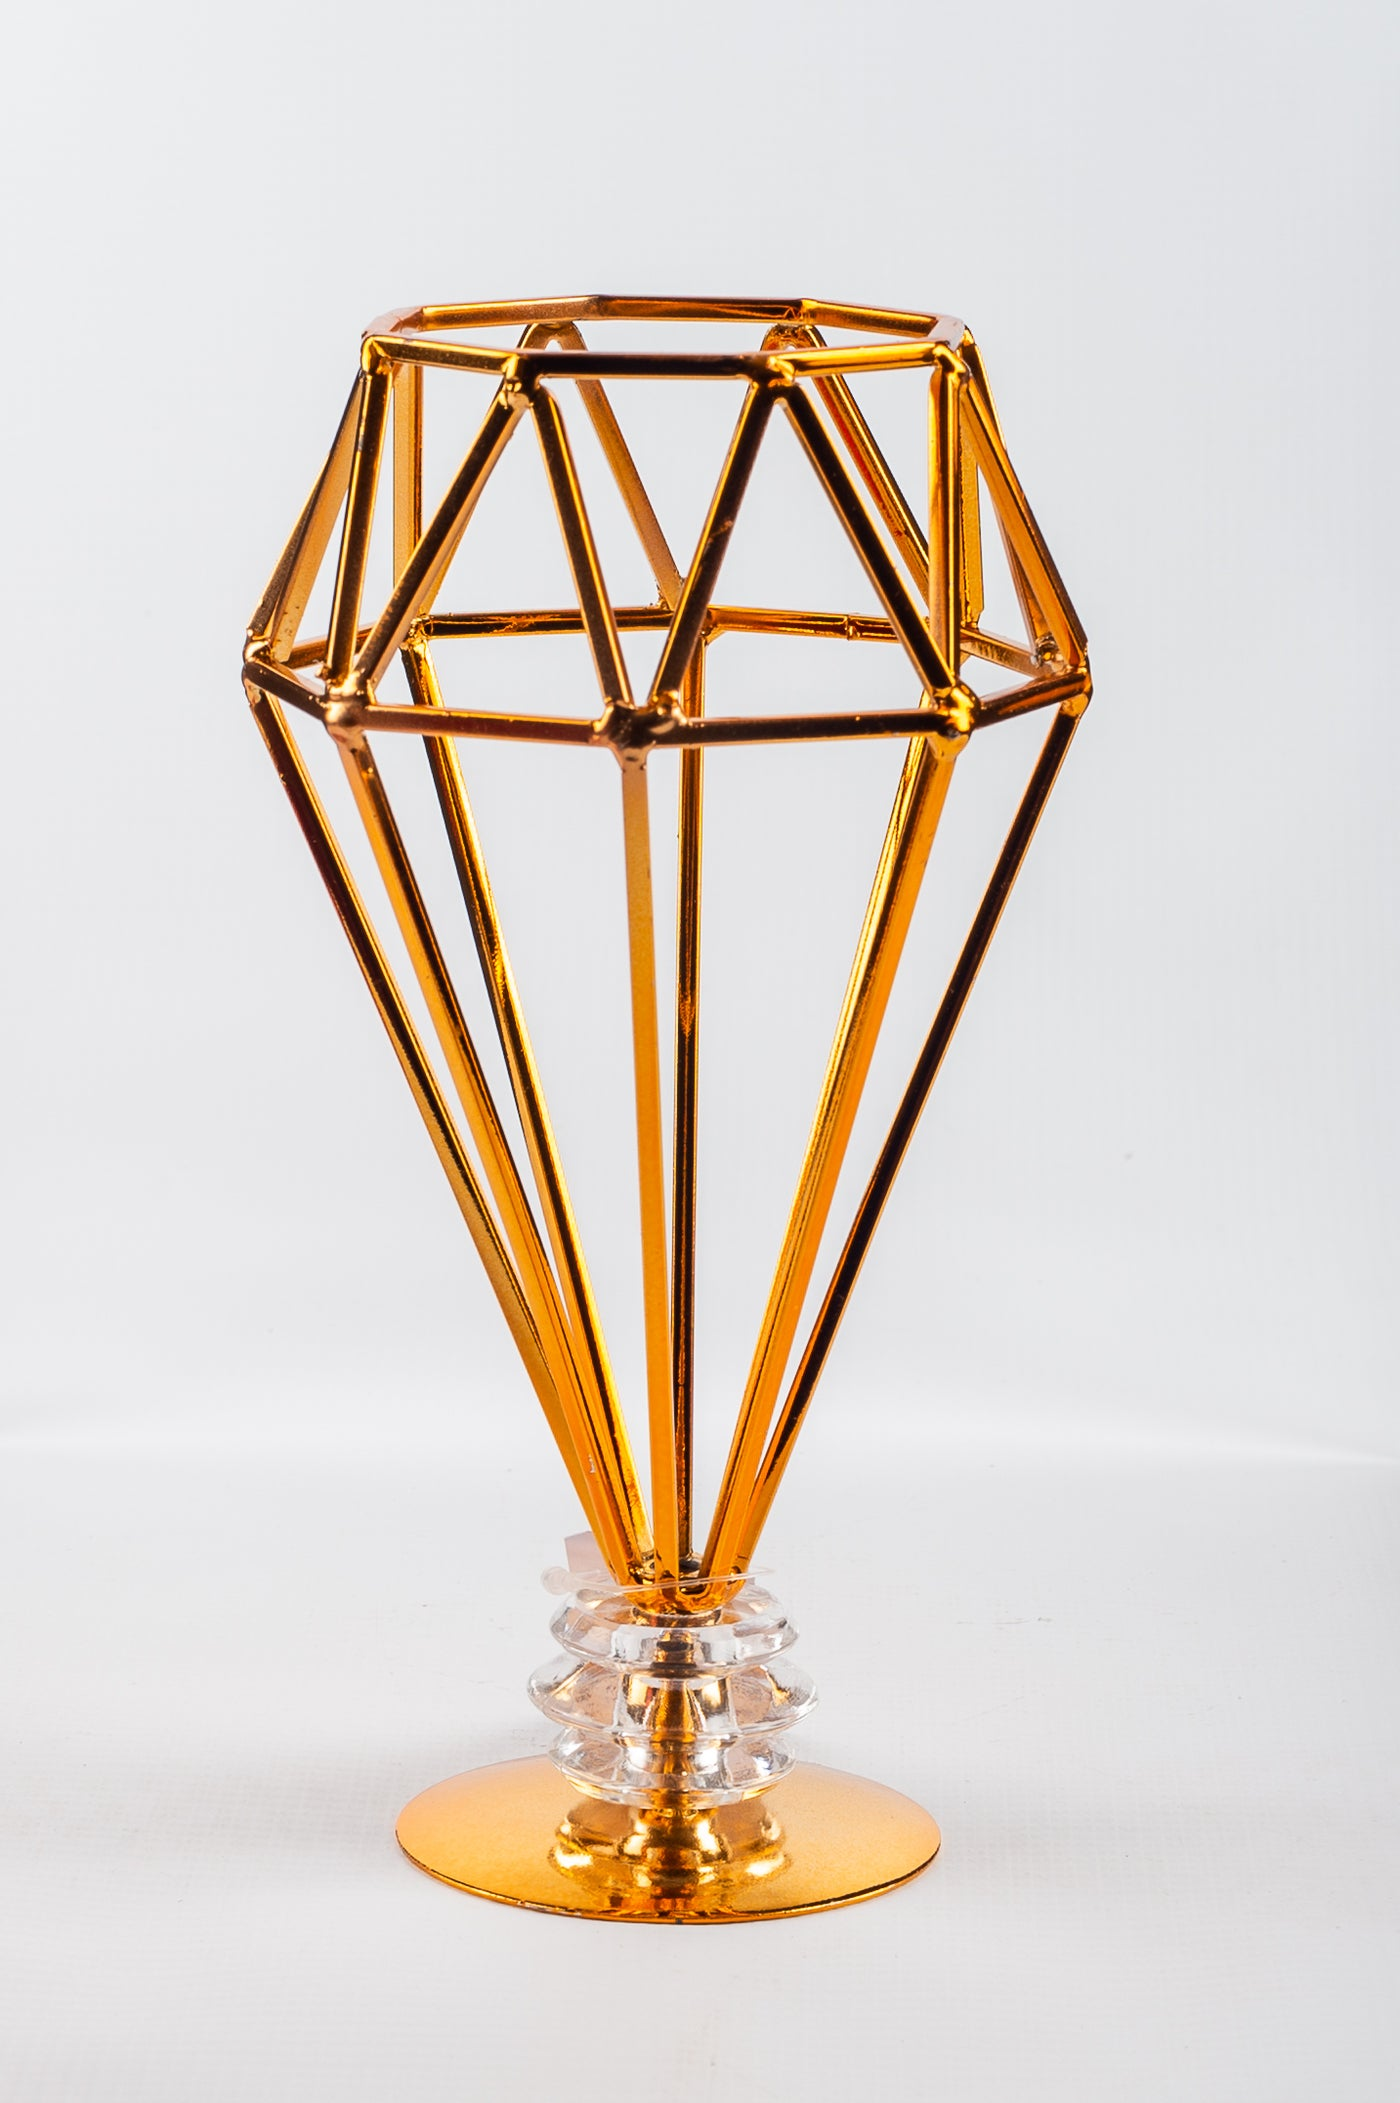 Diamond Geometric 9.5x18x6.8cm Gold